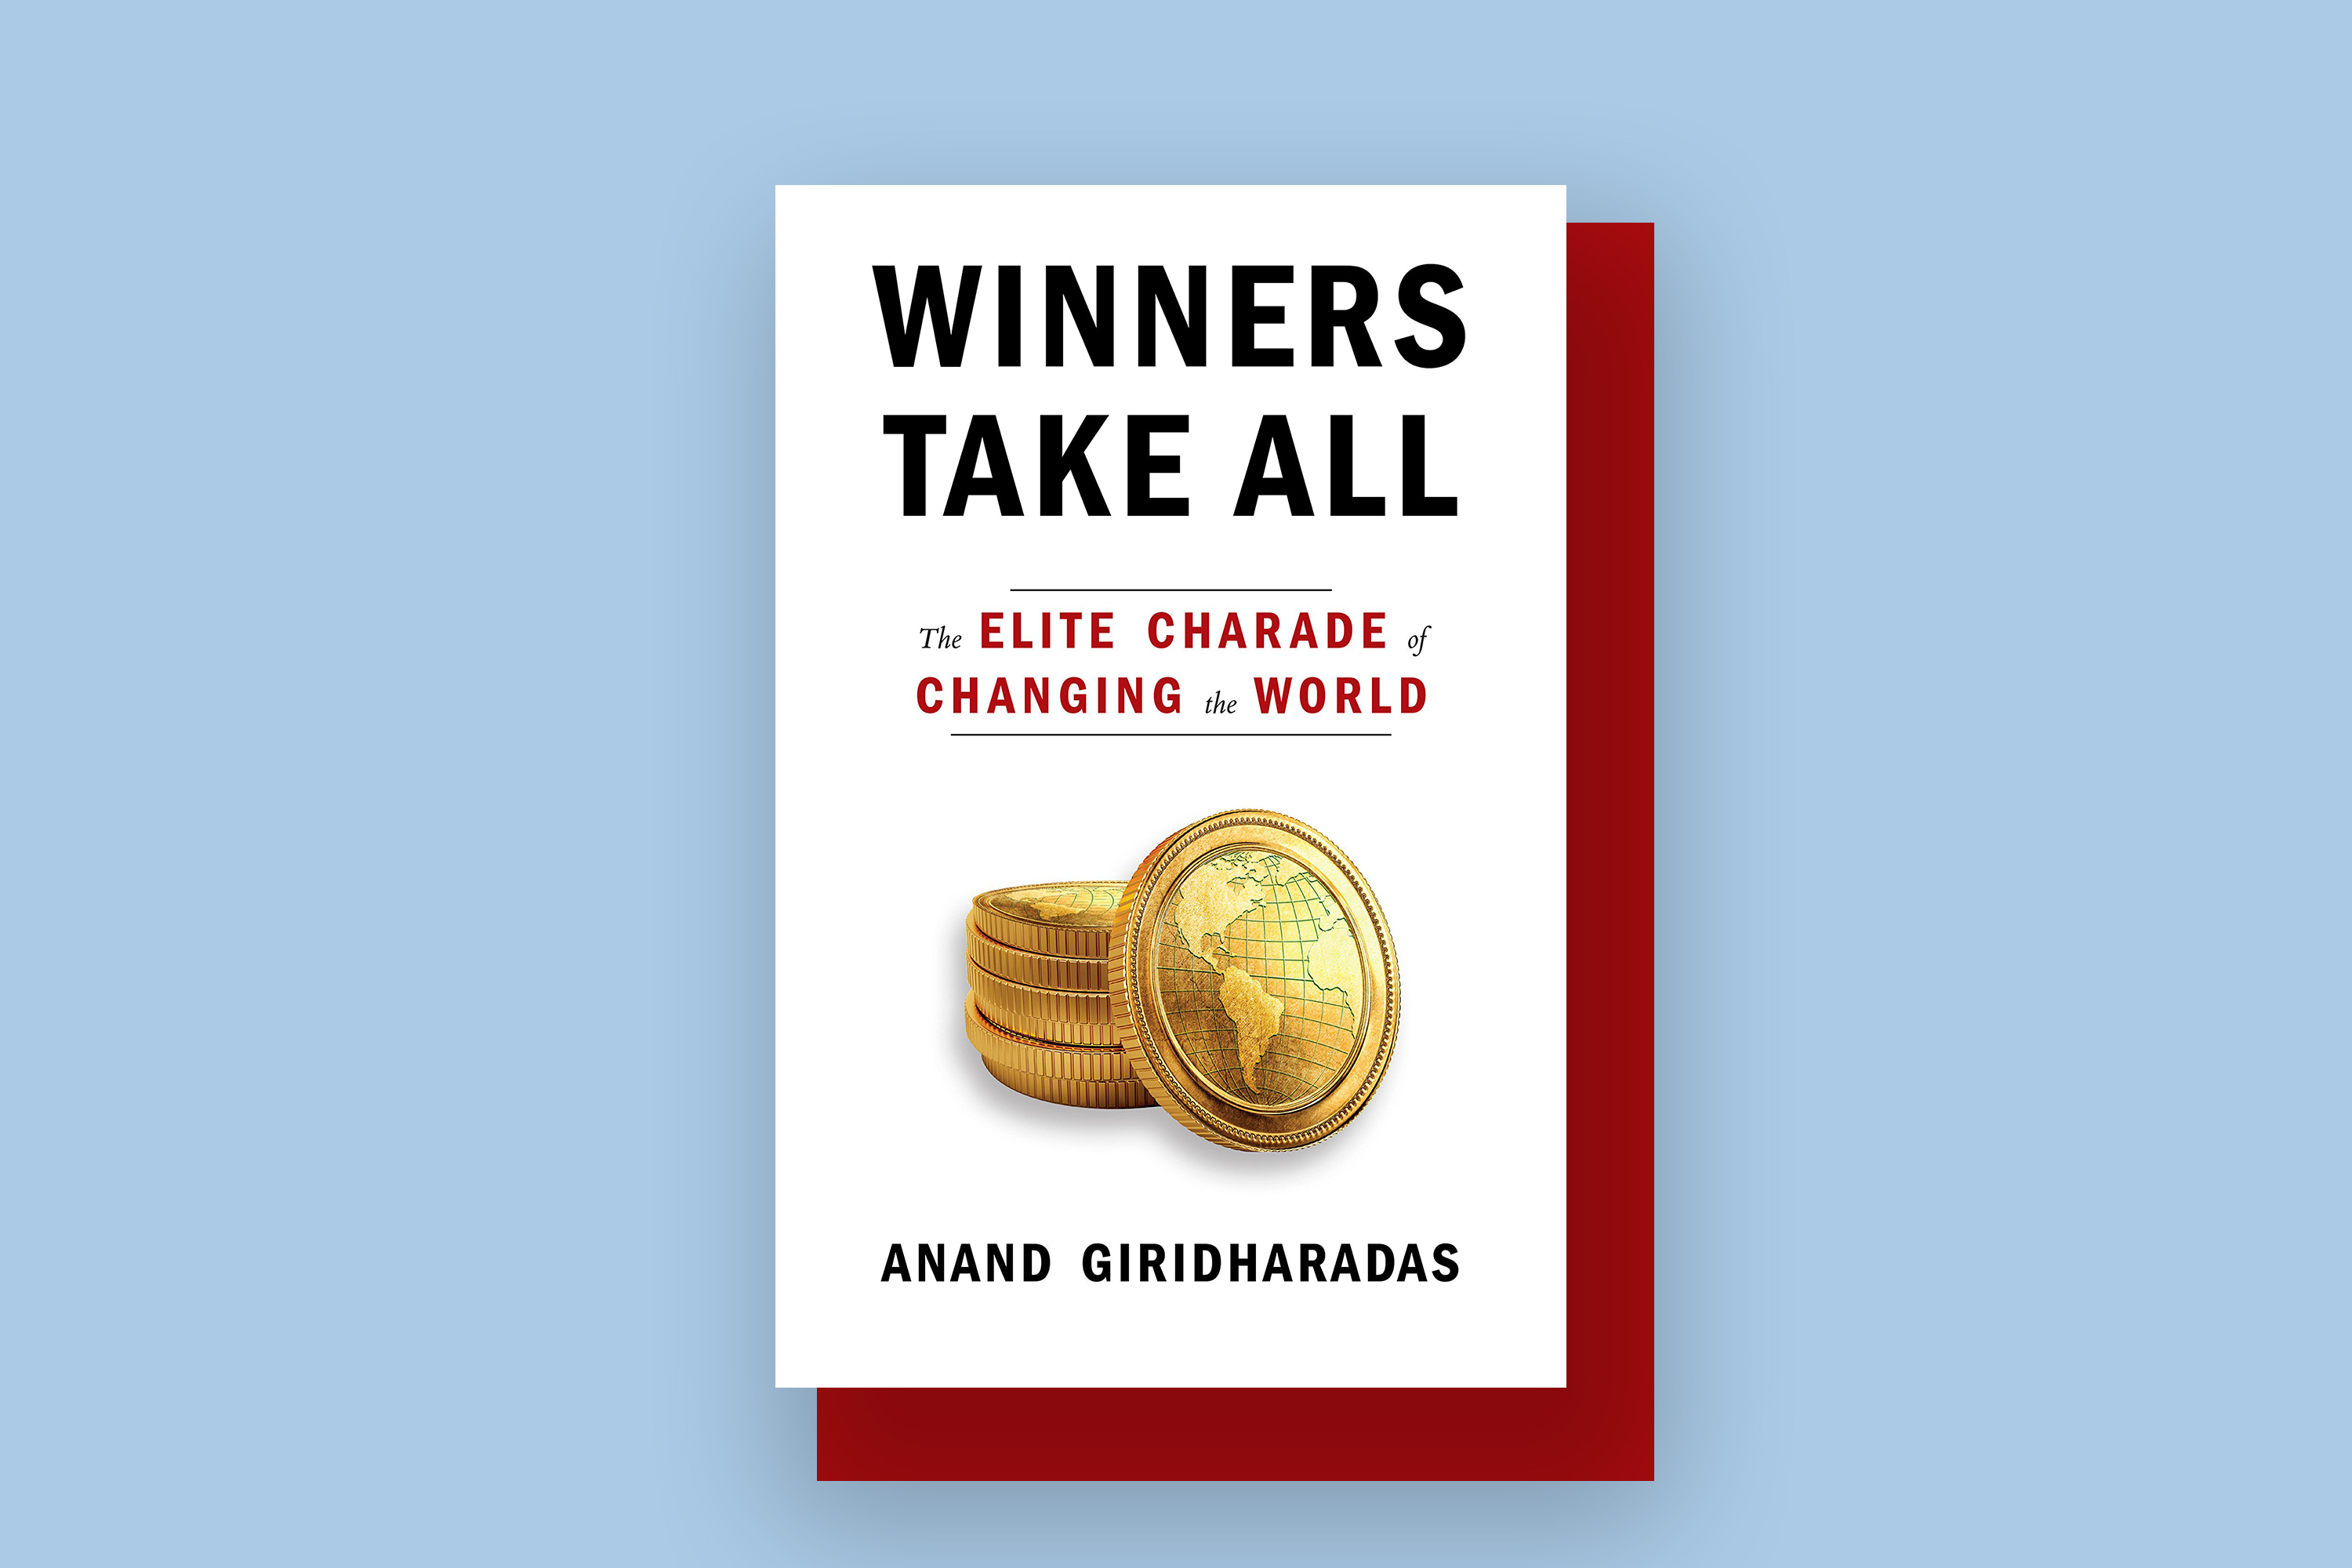 Winners Take All The Elite Charade of Changing the World, by: Anand Giridharadas